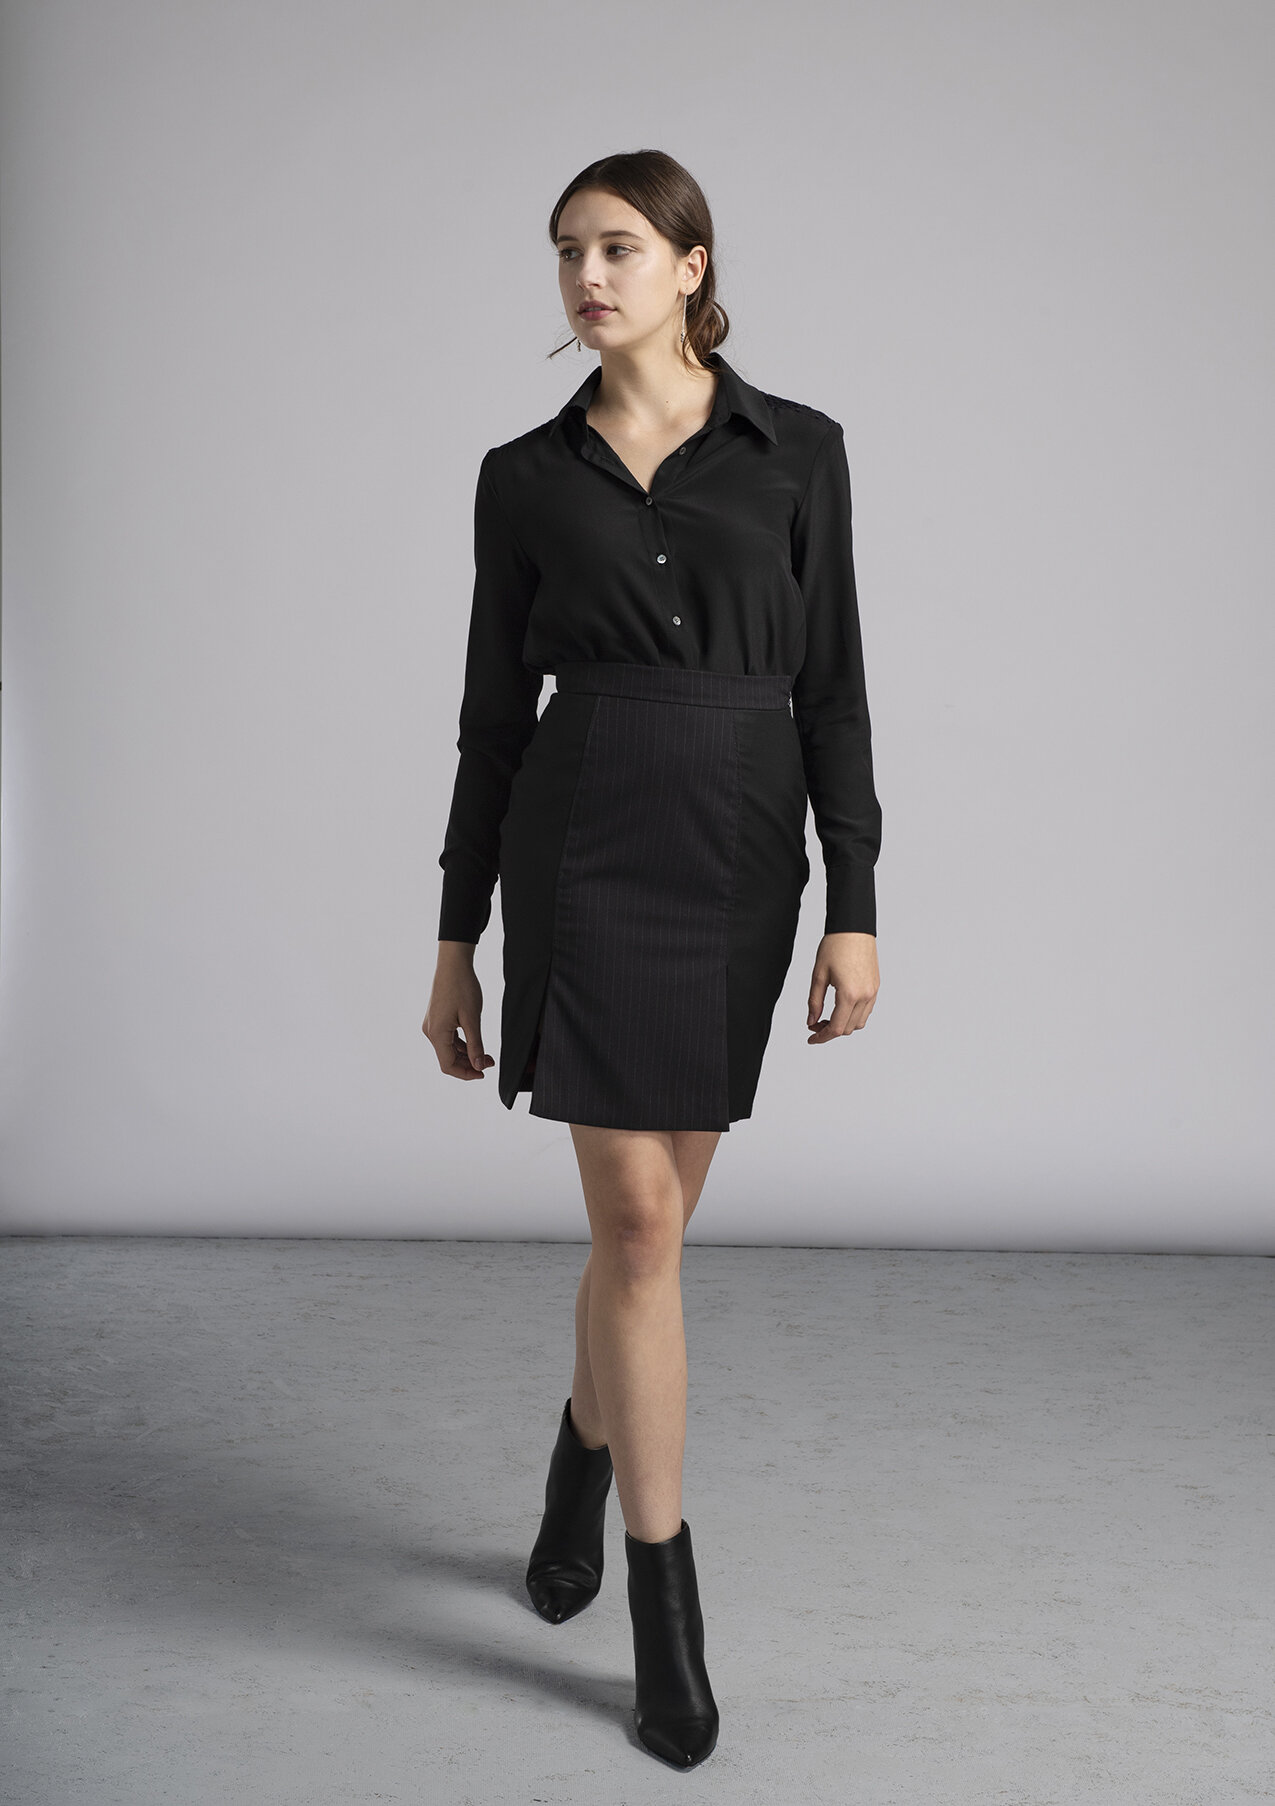 Women's made-to-measure black silk blouse and above the knee pencil skirt in black pinstripe